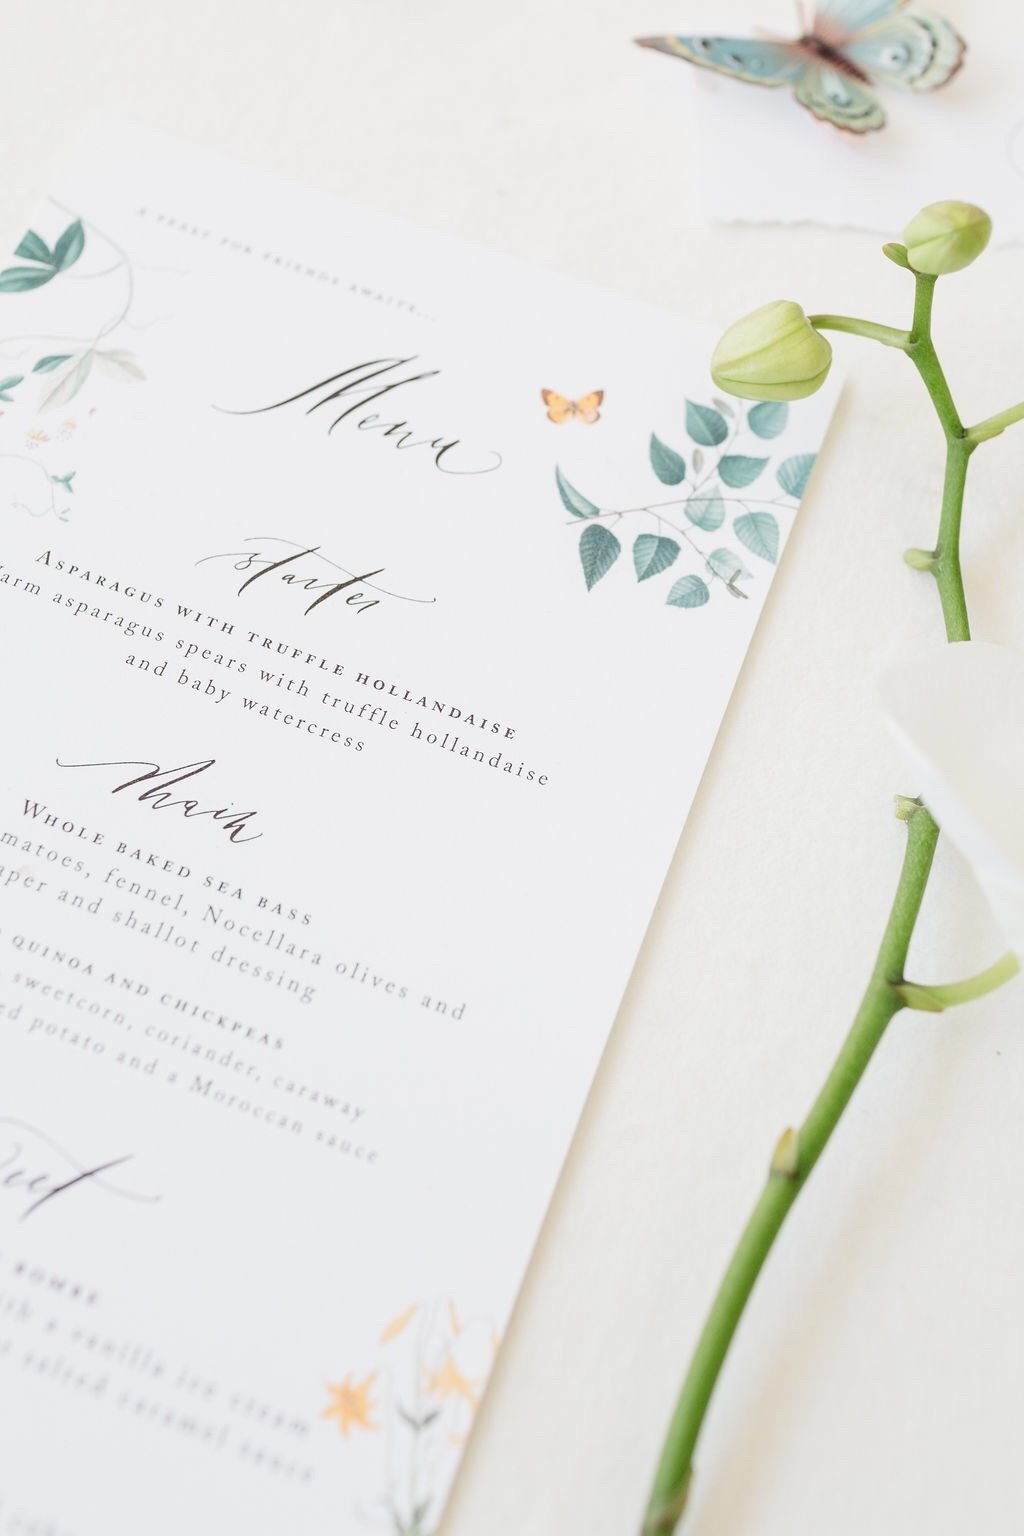 Bowtie and Belle Photography Laura Elizabeth Patrick Calligraphy